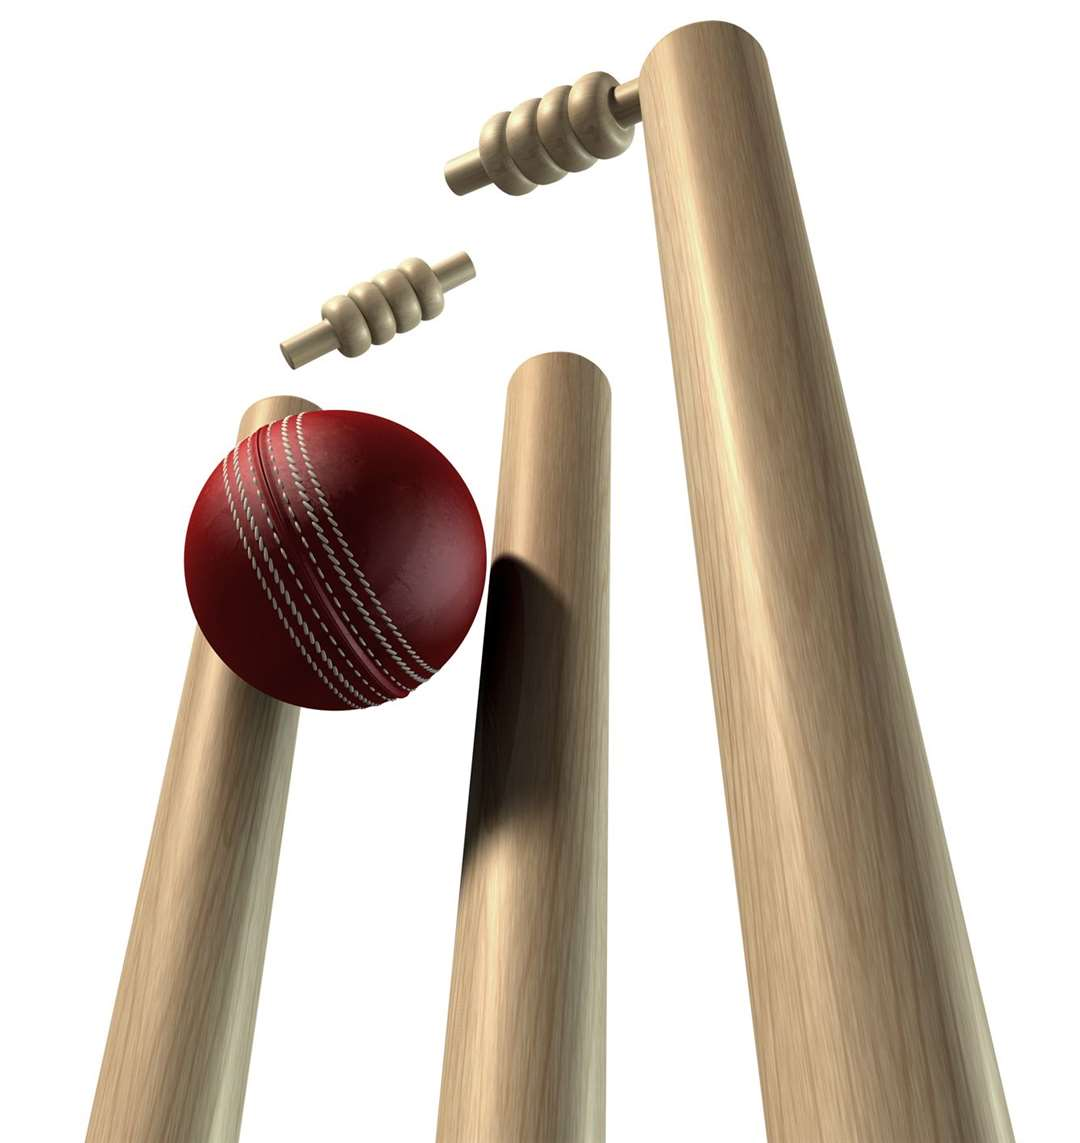 Cricket Ball Hitting Wickets Perspective Isolated (14551700)